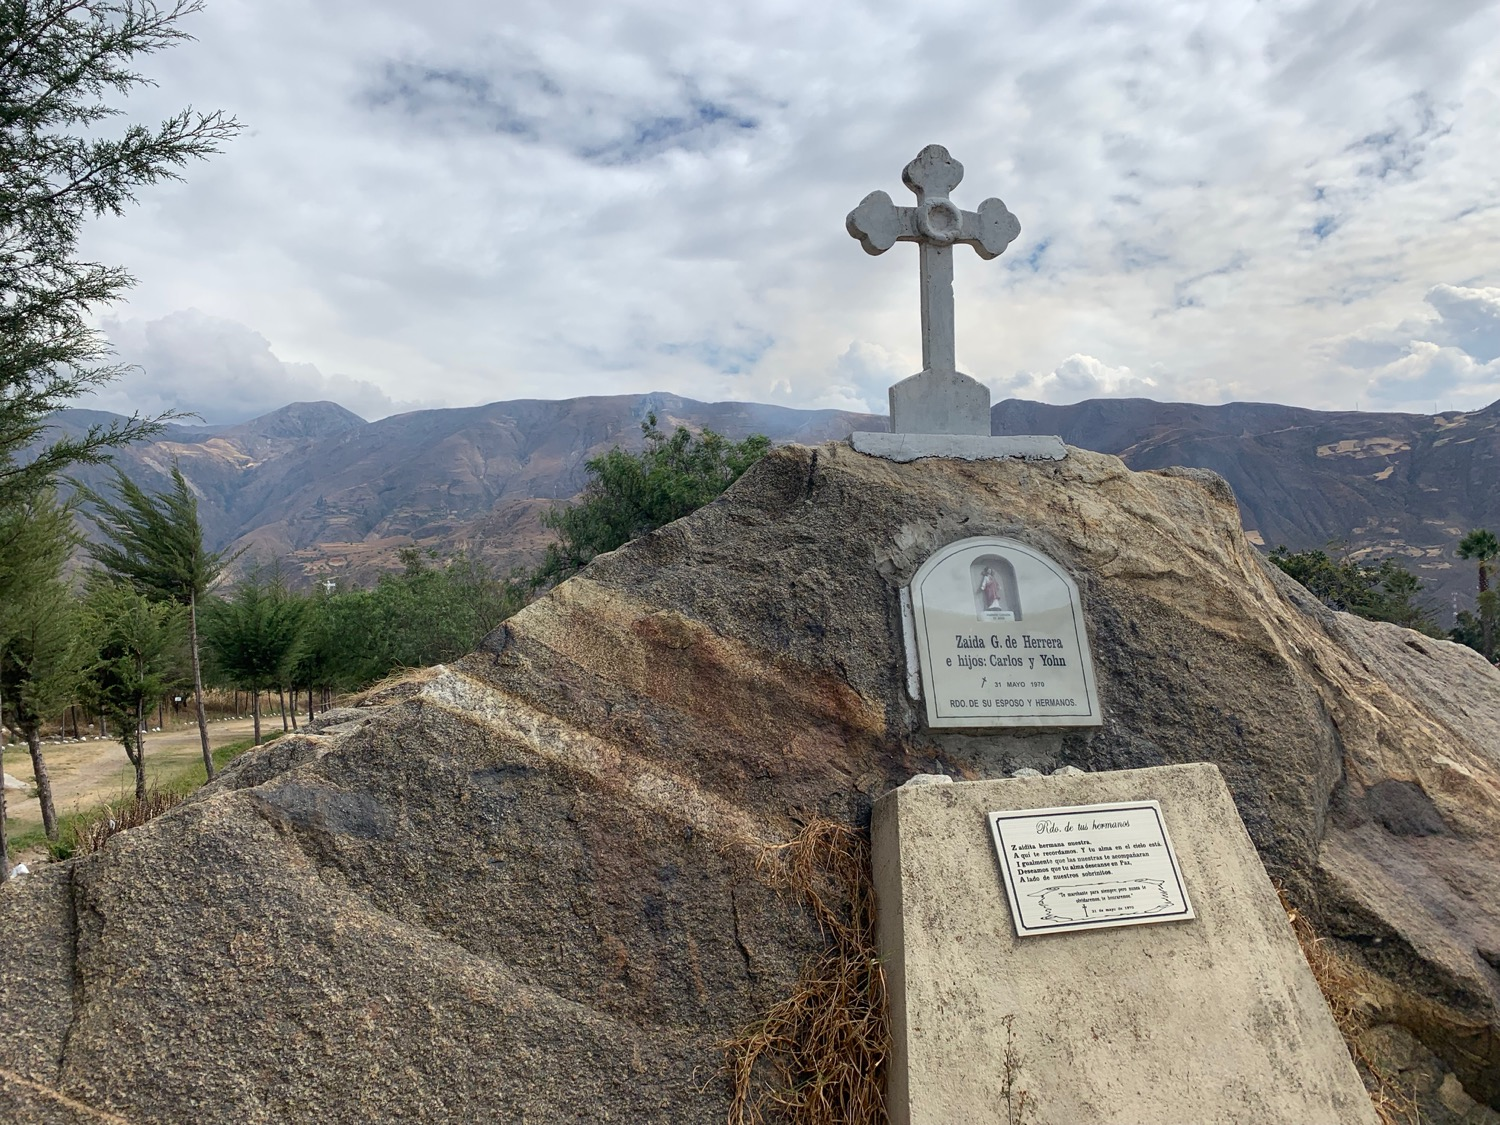 This memorial was built into a rock by a father who lost his wife and two sons in El Alud.